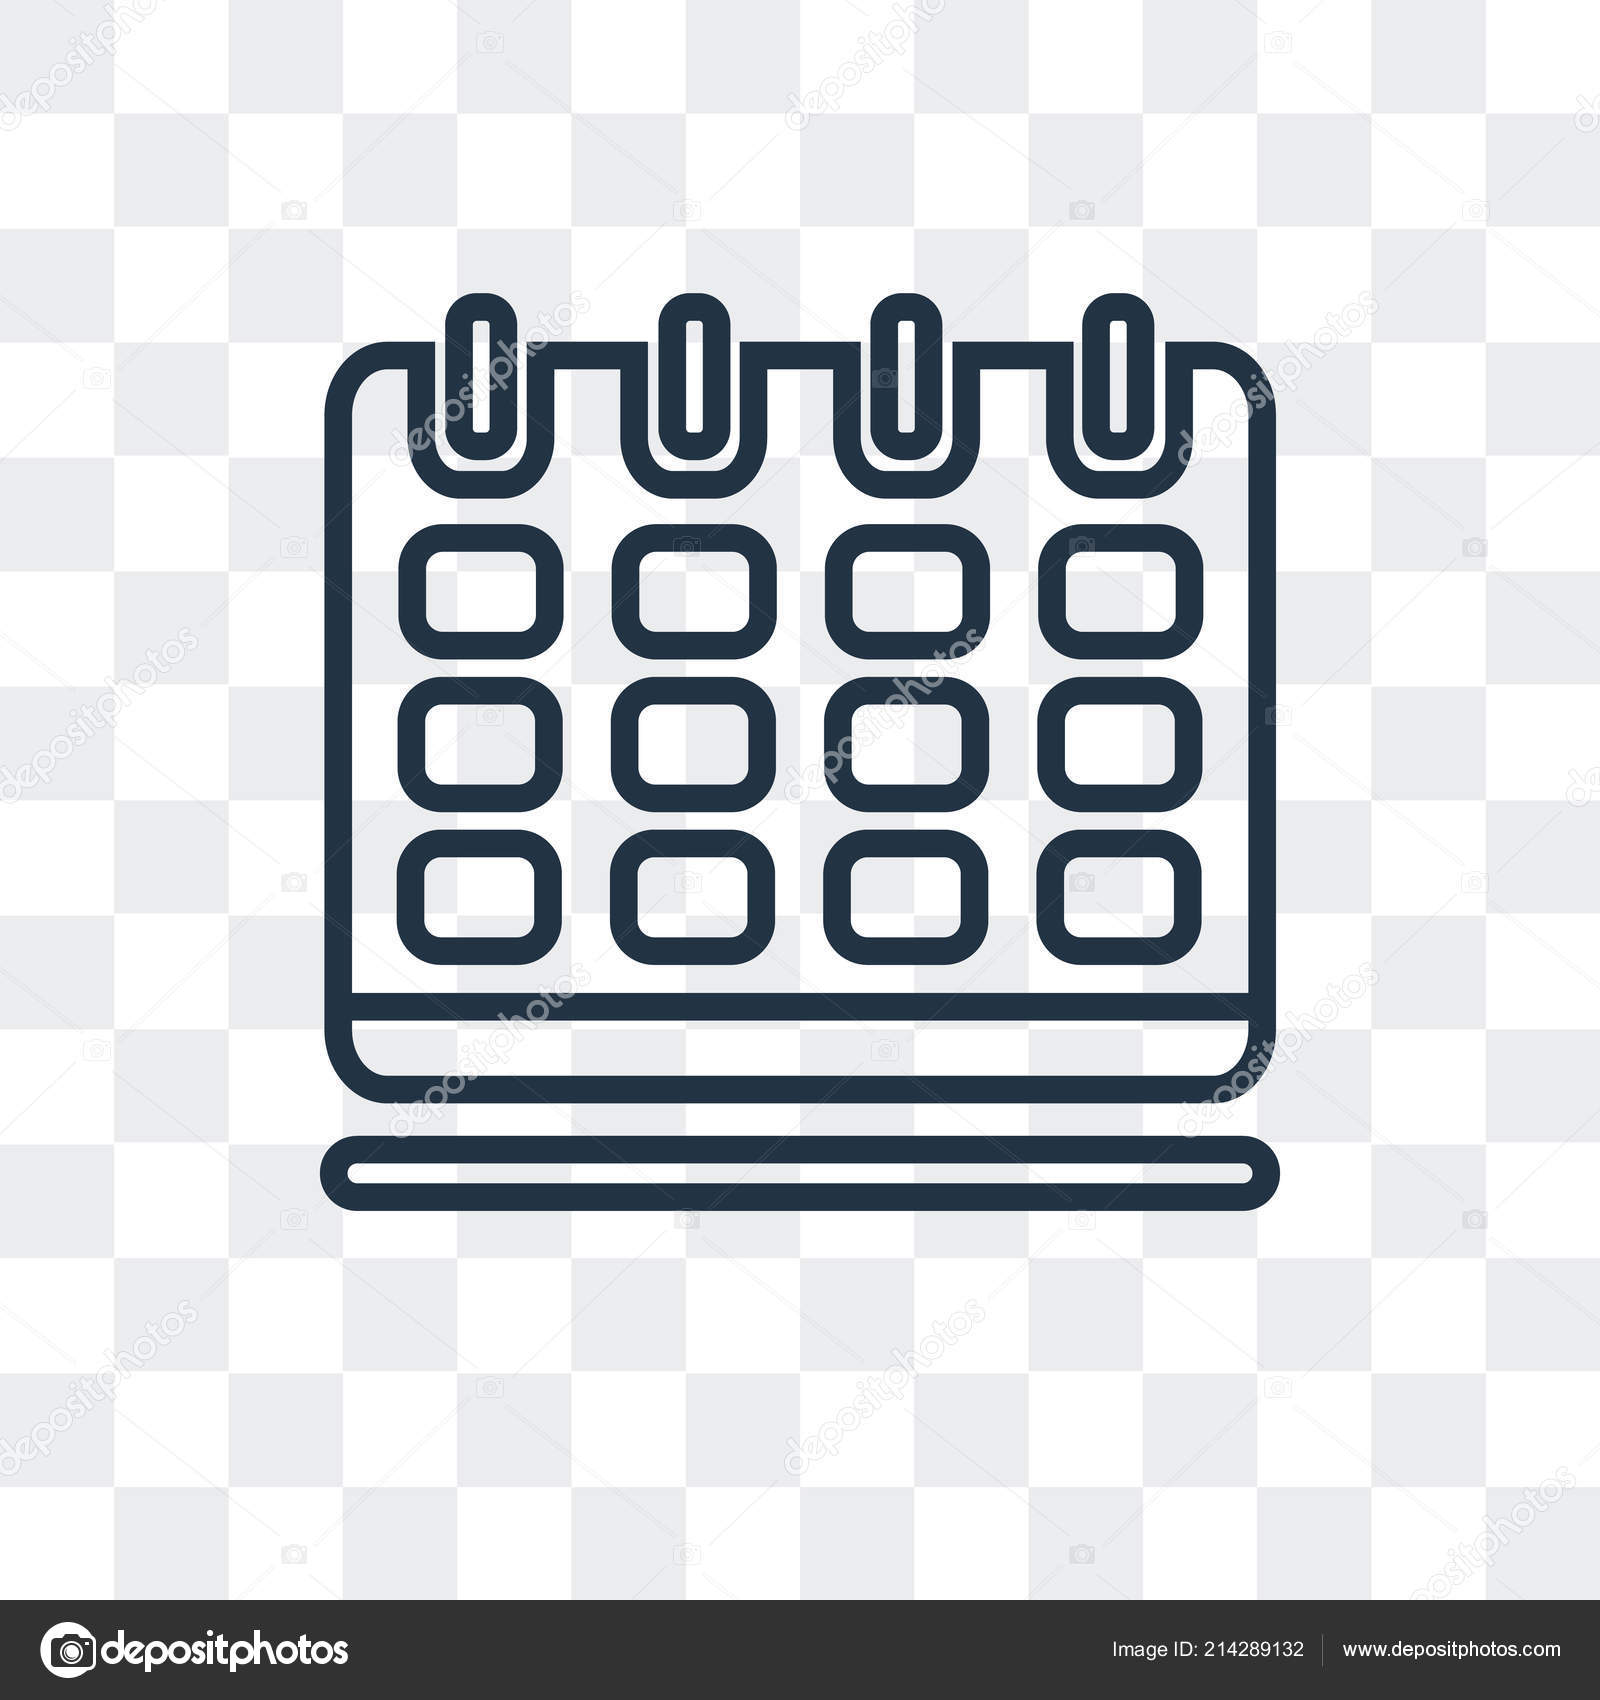 Illustration Calendrier.Calendar Vector Icon Isolated On Transparent Background